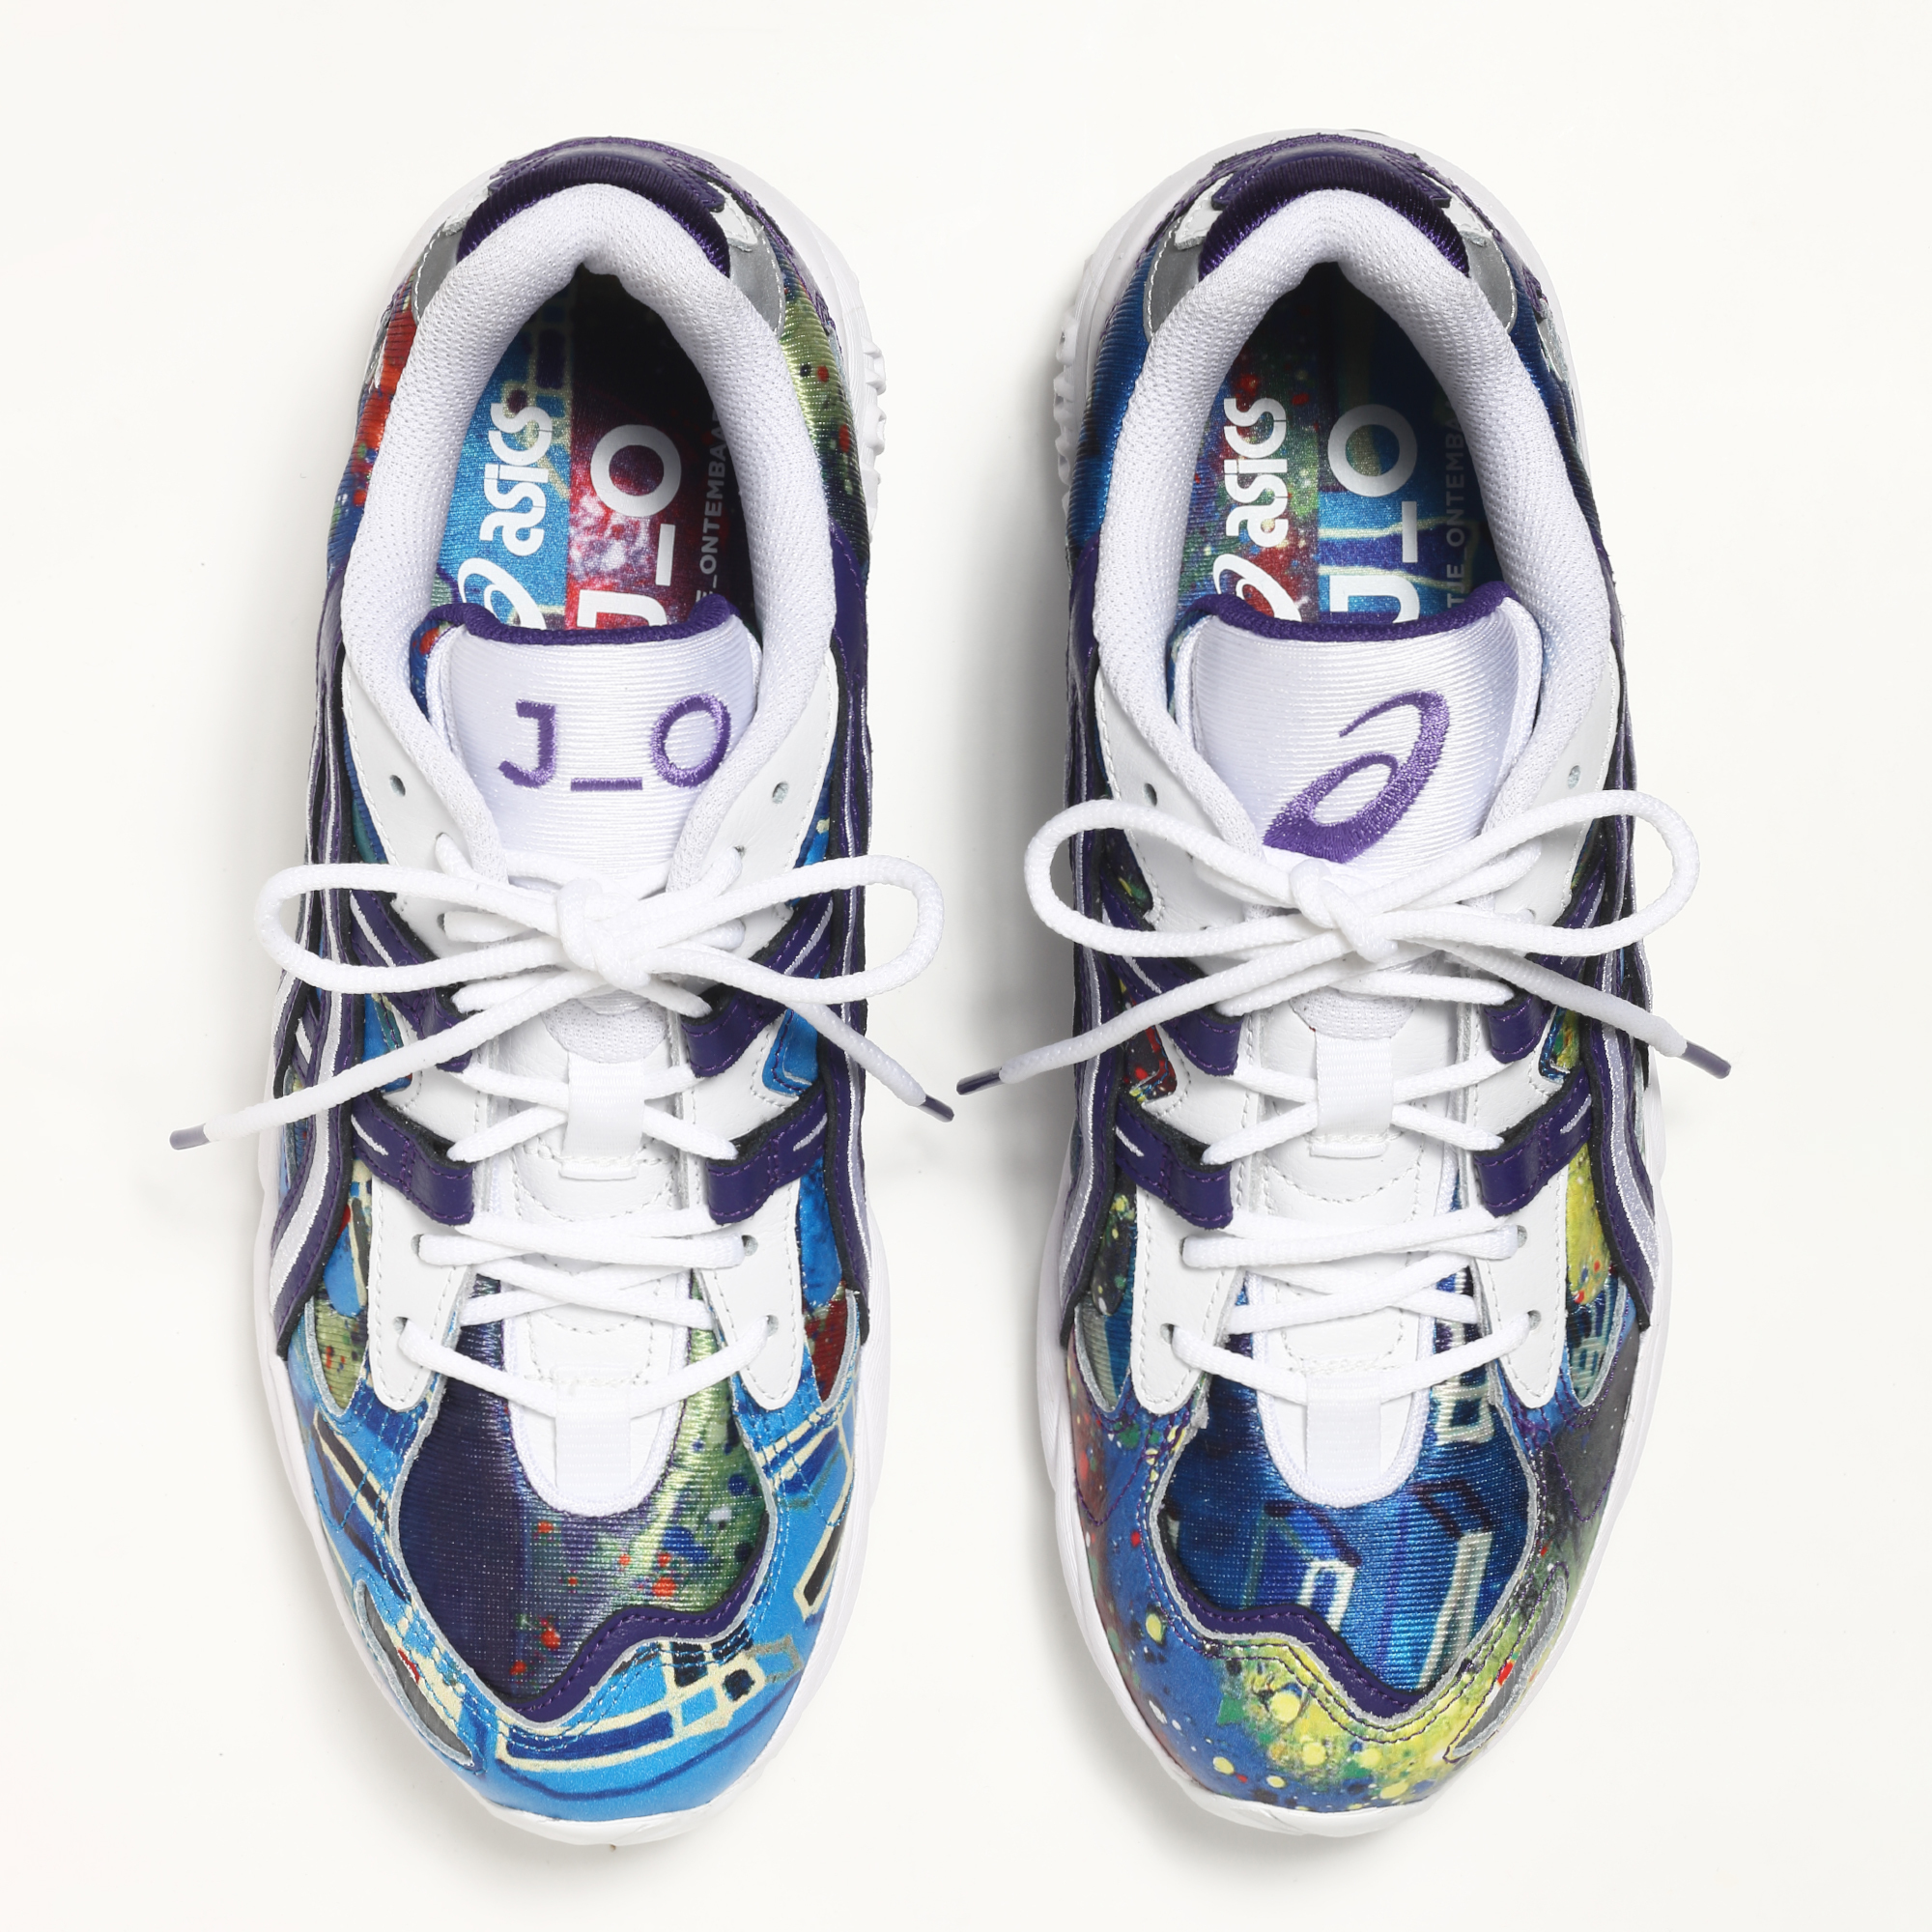 J_O×ASICS SportStyle 2020SSコラボレーションスニーカー【SPECIAL EDITION LIMITED】